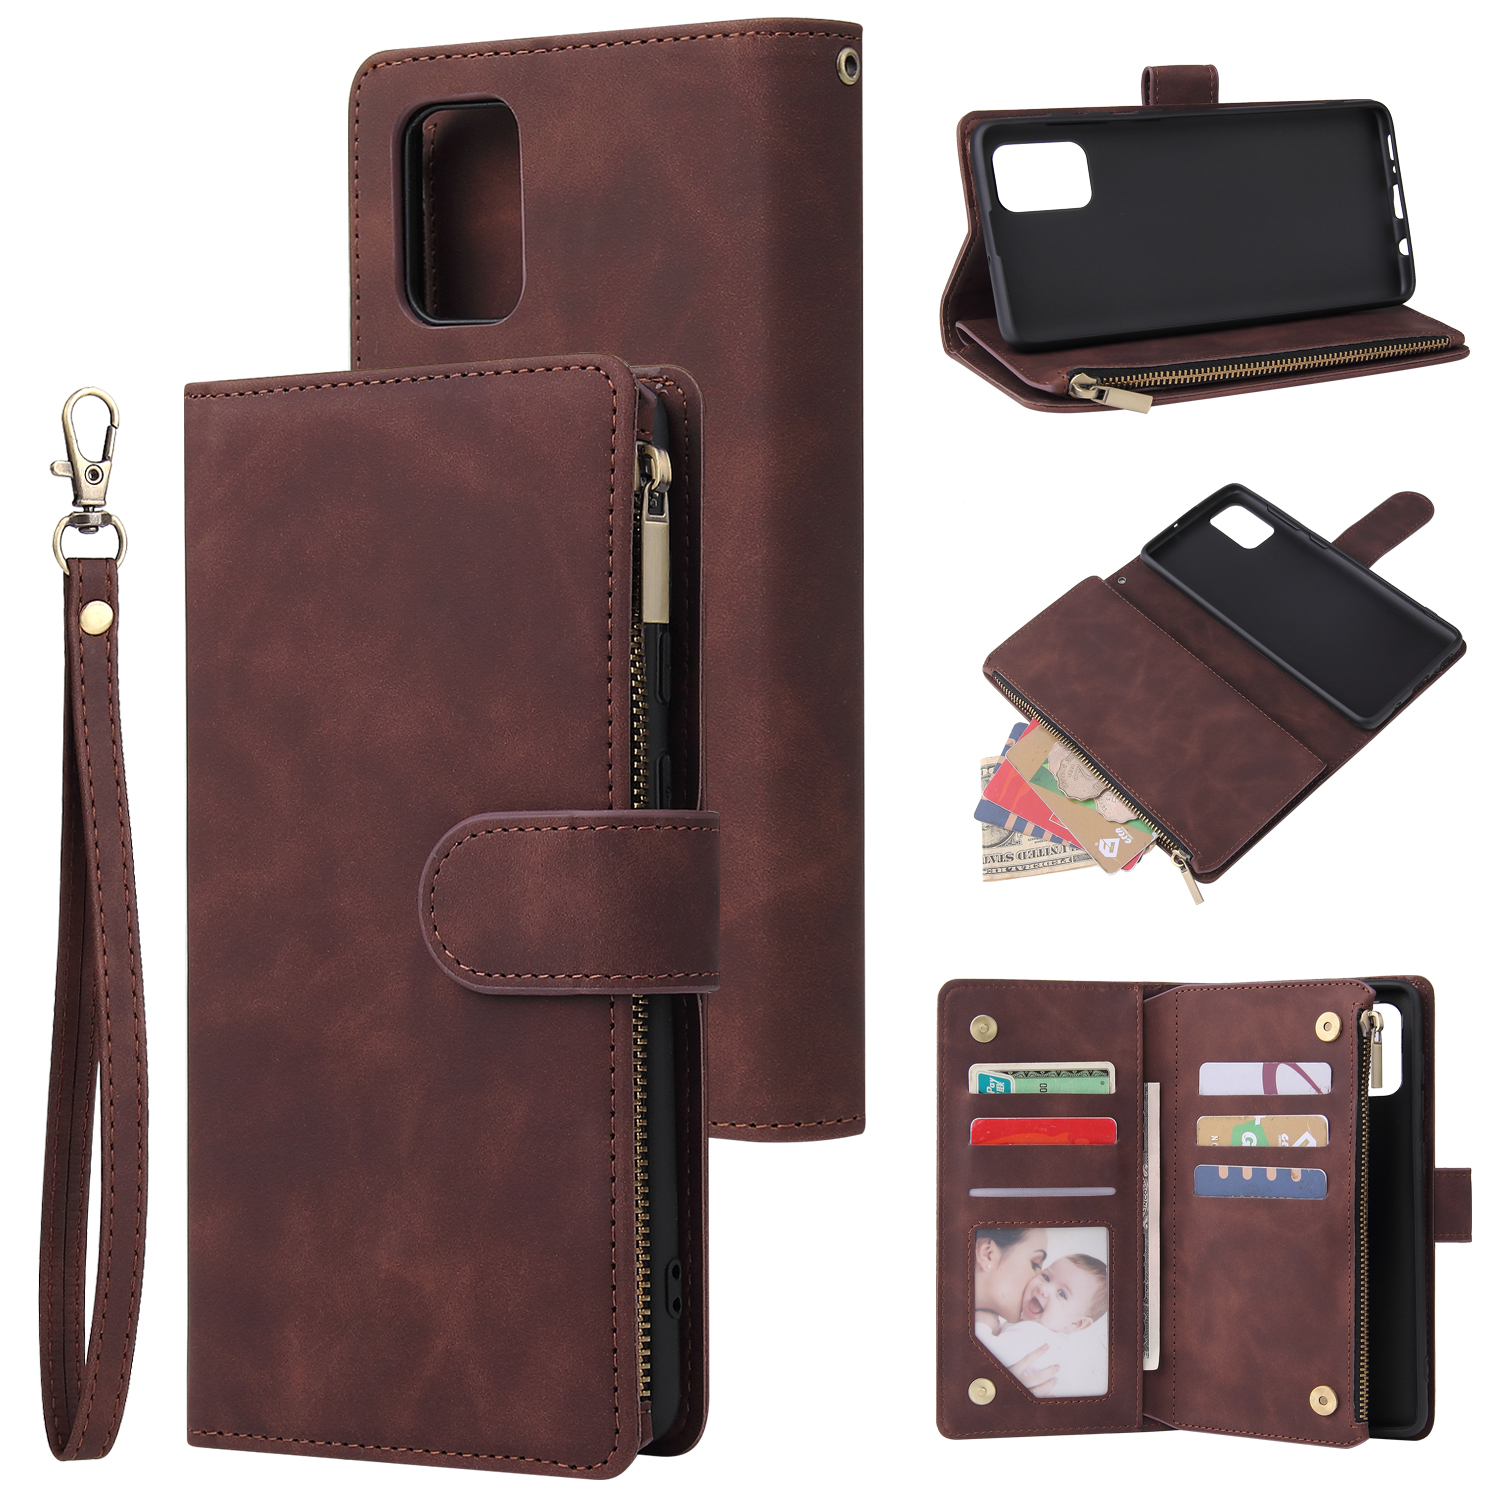 For Samsung A71 Case Smartphone Shell Precise Cutouts Zipper Closure Wallet Design Overall Protection Phone Cover  Coffee